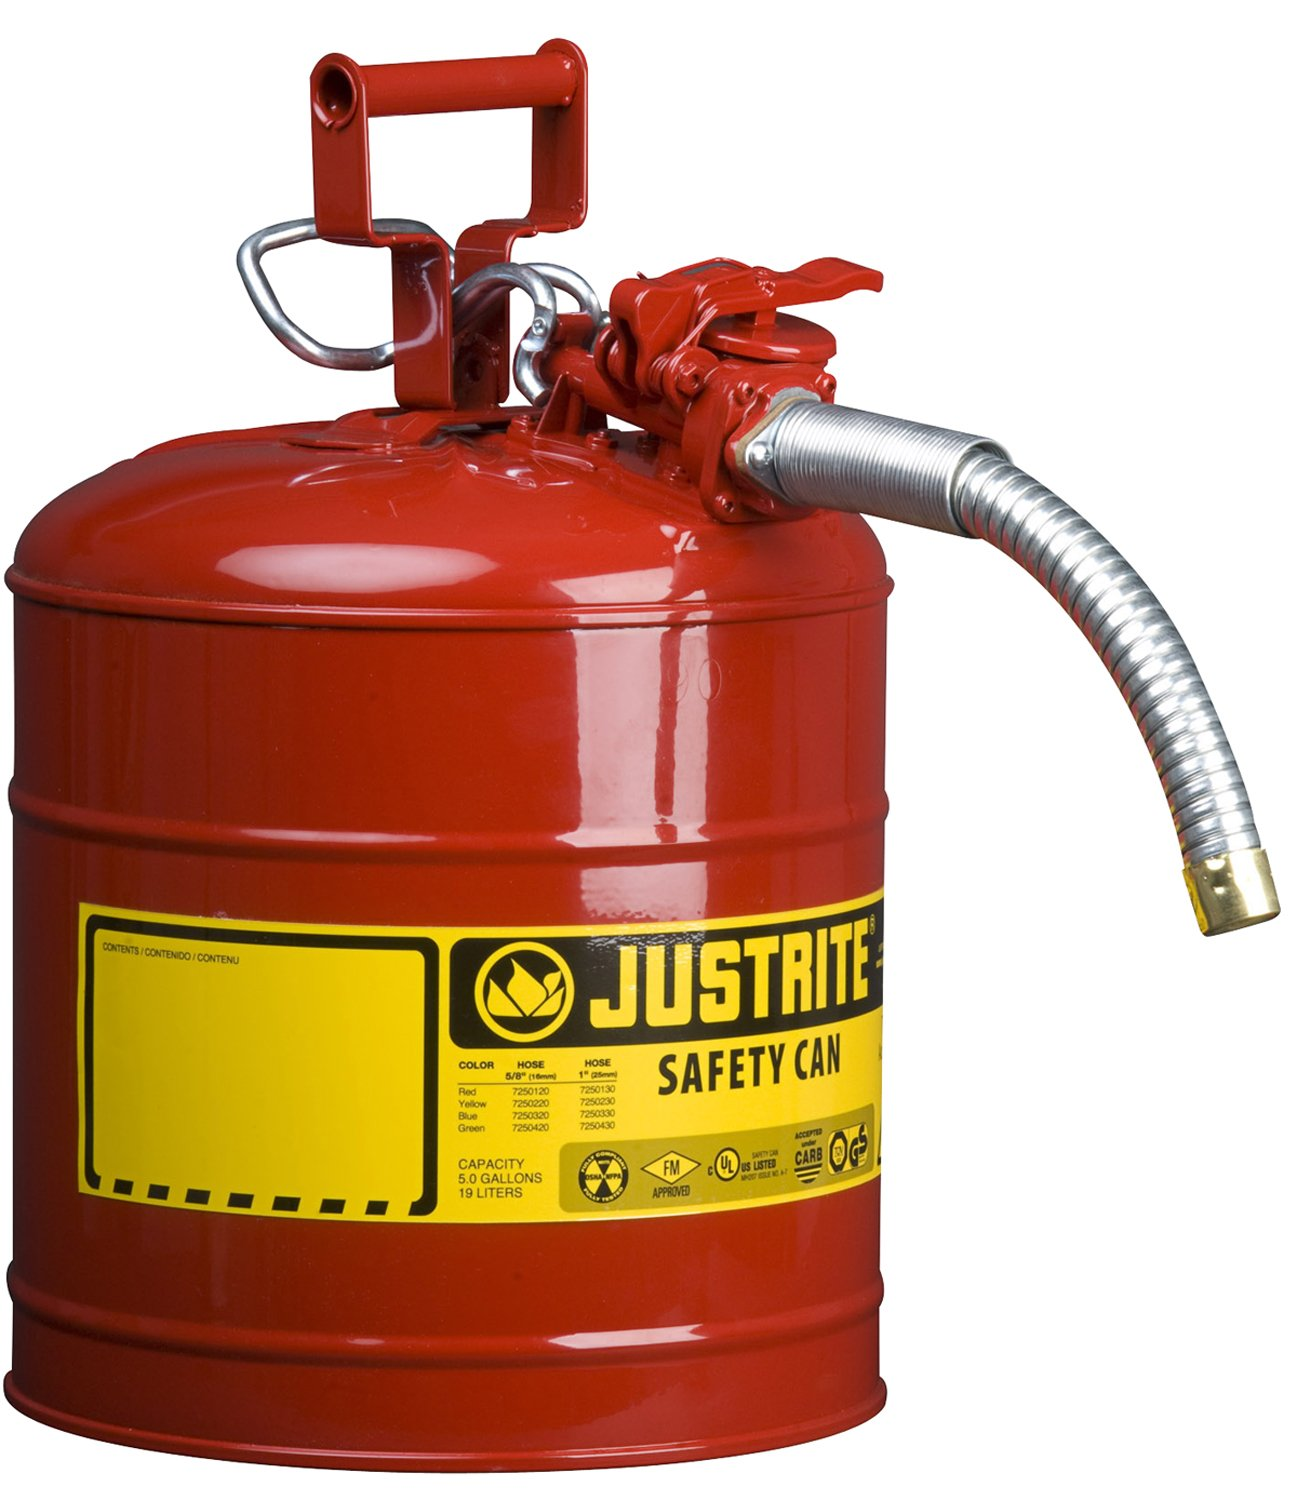 Justrite 7250130 Galvanized Steel, AccuFlow Type II Red Safety Can with 1'' Flexible Spout, Large ID zone, Meets OSHA & NFPA For Handling Hazardous liquids. 5 Gallon (19L) Size. by Justrite